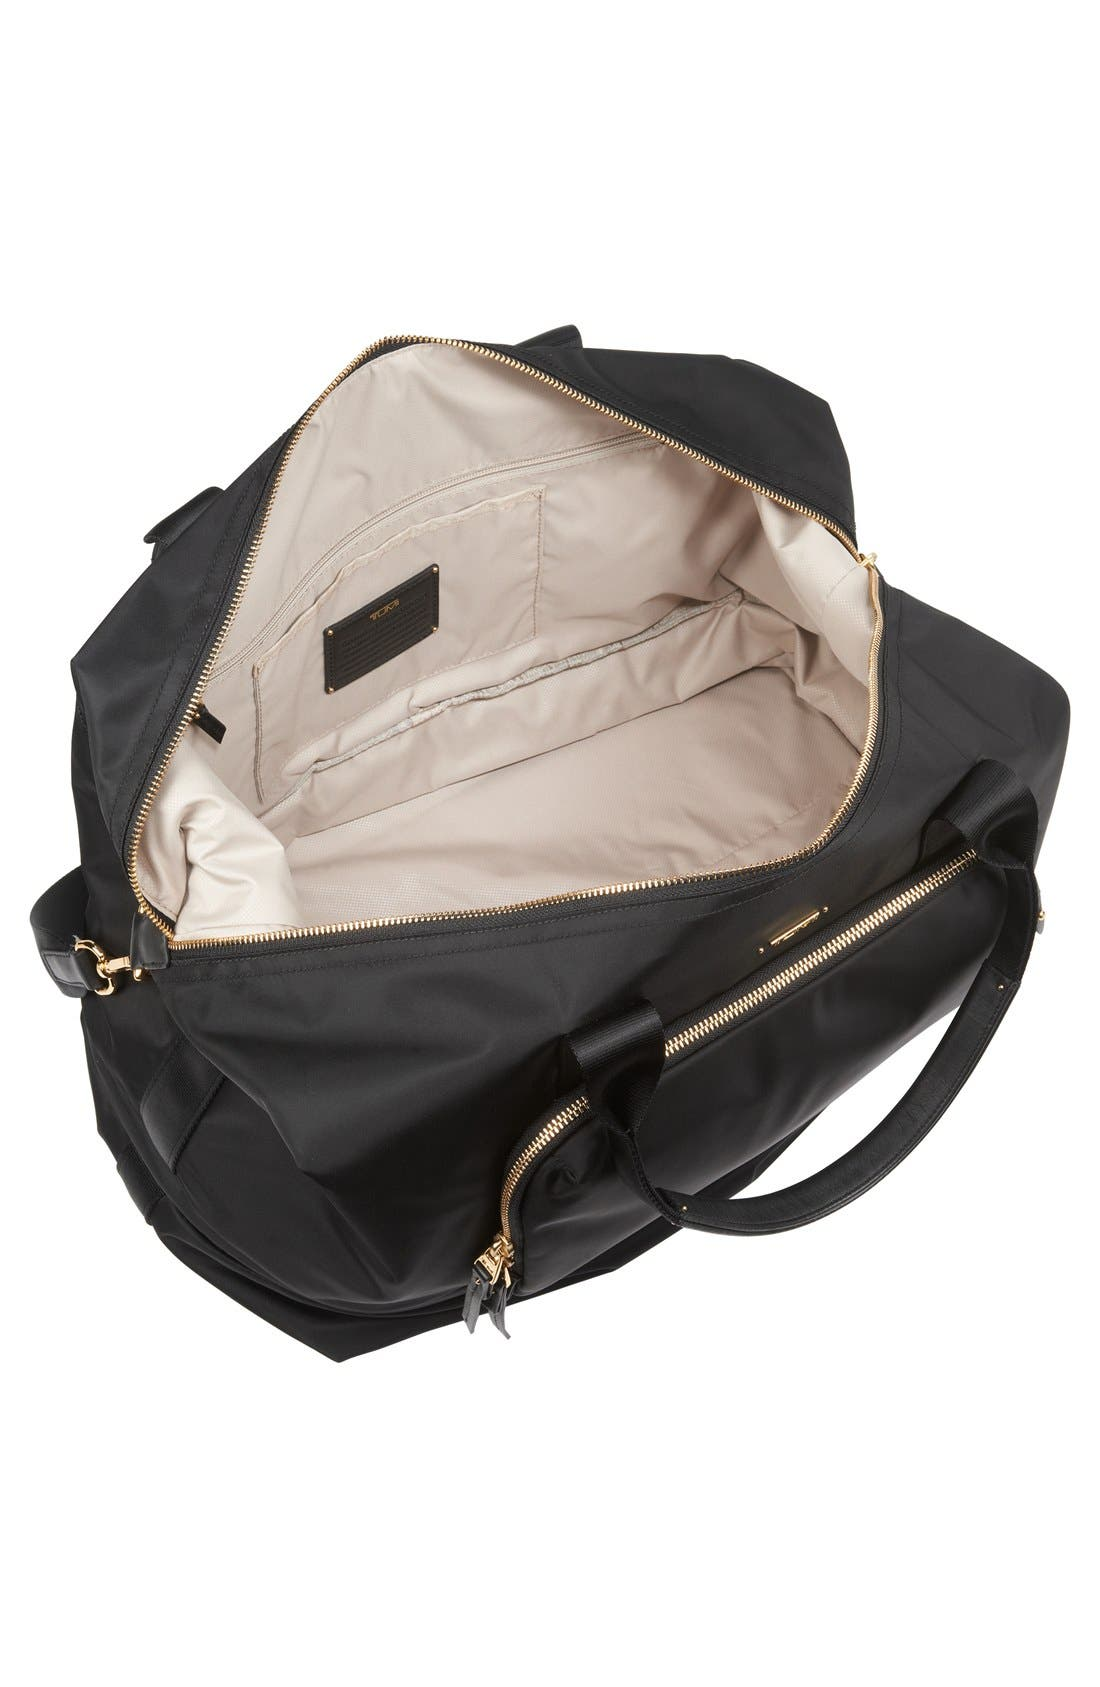 Durban Expandable Duffel Bag,                             Alternate thumbnail 3, color,                             Black